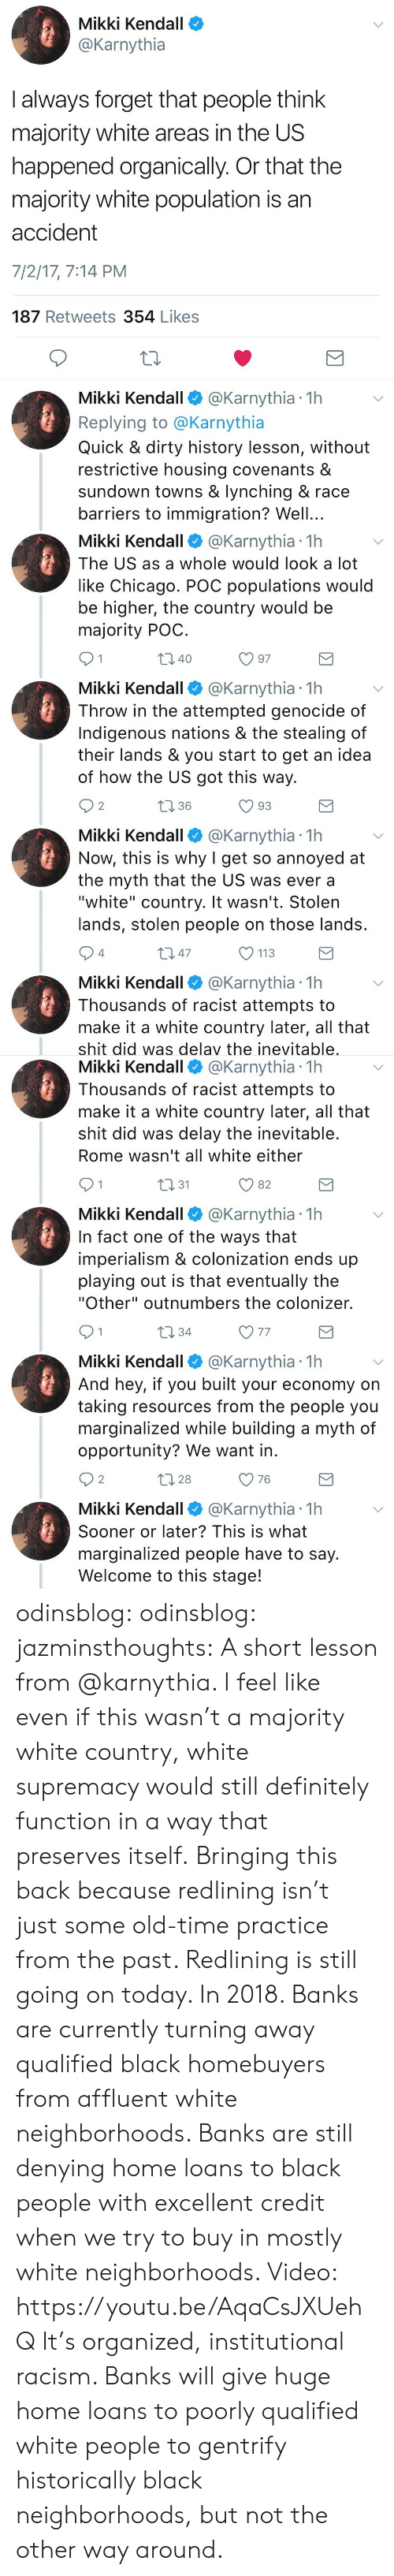 """imperialism: Mikki Kendall  @Karnythia  I always forget that people think  majority white areas in the US  happened organically. Or that the  majority white population is an  accident  7/2/17, 7:14 PM  187 Retweets 354 Likes  10  Mikki Kendall @Karnythia 1h  Replying to @Karnythia  Quick & dirty history lesson, without  restrictive housing covenants &  sundown towns & lynching & race  barriers to immigration? Well...   Mikki Kendall@Karnythia 1h  The US as a whole would look a lot  like Chicago. POC populations would  be higher, the country would be  majority POC  40  Mikki Kendall @Karnythia 1h  Throw in the attempted genocide of  Indigenous nations & the stealing of  their lands & you start to get an idea  of how the US got this way.  2  1 36  Mikki Kendall@Karnythia 1h  Now, this is why I get so annoyed at  the myth that the US was ever a  """"white"""" country. It wasn't. Stolen  lands, stolen people on those lands  4  m 47  113  Mikki Kendall @Karnythia 1h  Thousands of racist attempts to  make it a white country later, all that  shit did was delav the inevitable   Mikki Kendall @Karnythia 1h  Thousands of racist attempts to  make it a white country later, all that  shit did was delay the inevitable  Rome wasn't all white either  n31  O 82  Mikki Kendall @Karnythia 1h  In fact one of the ways that  imperialism & colonization ends up  playing out is that eventually the  """"Other"""" outnumbers the colonizer.  10 34  V 77  Mikki Kendall @Karnythia 1h  And hey, if you built your economy on  taking resources from the people you  marginalized while building a myth of  opportunity? We want in  2  28  O 76  Mikki Kendall @Karnythia 1h  Sooner or later? This is what  marginalized people have to say  Welcome to this stage! odinsblog:  odinsblog:  jazminsthoughts:  A short lesson from @karnythia.   I feel like even if this wasn't a majority white country, white supremacy would still definitely function in a way that preserves itself.  Bringing this back because redlining isn't just"""